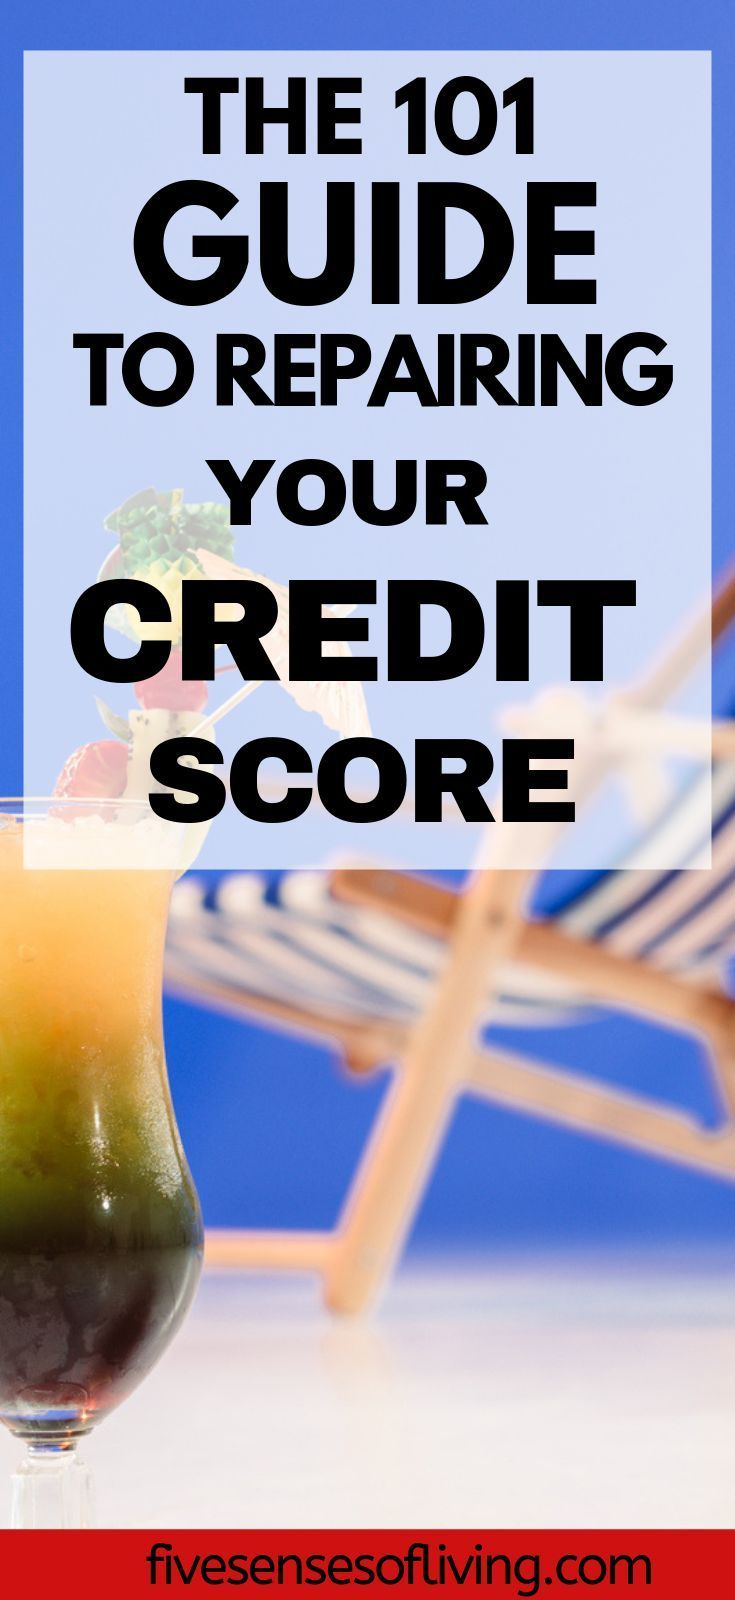 Credit Card Aesthetic Ideas Credit card images, Improve